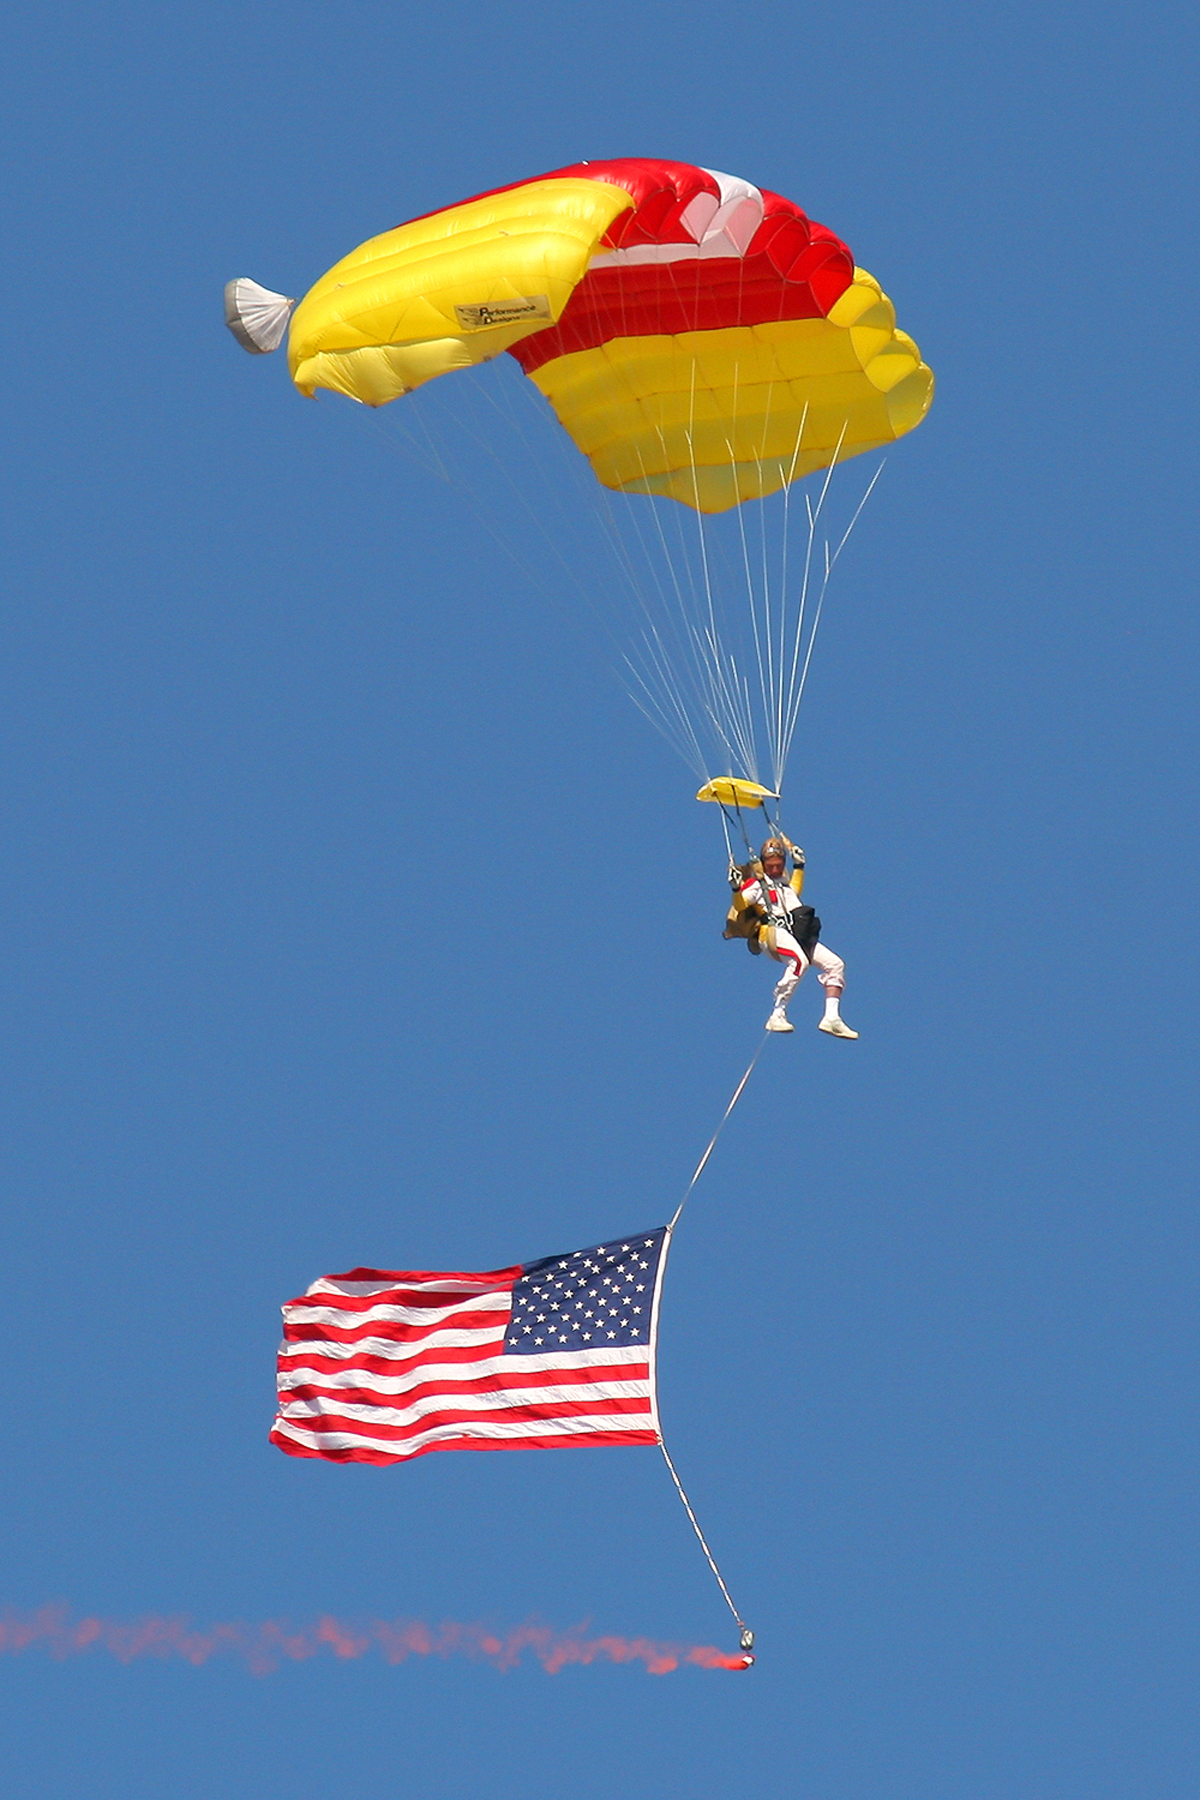 The 15th Annual Riverside Air Show: The Biggest Little Show in the West